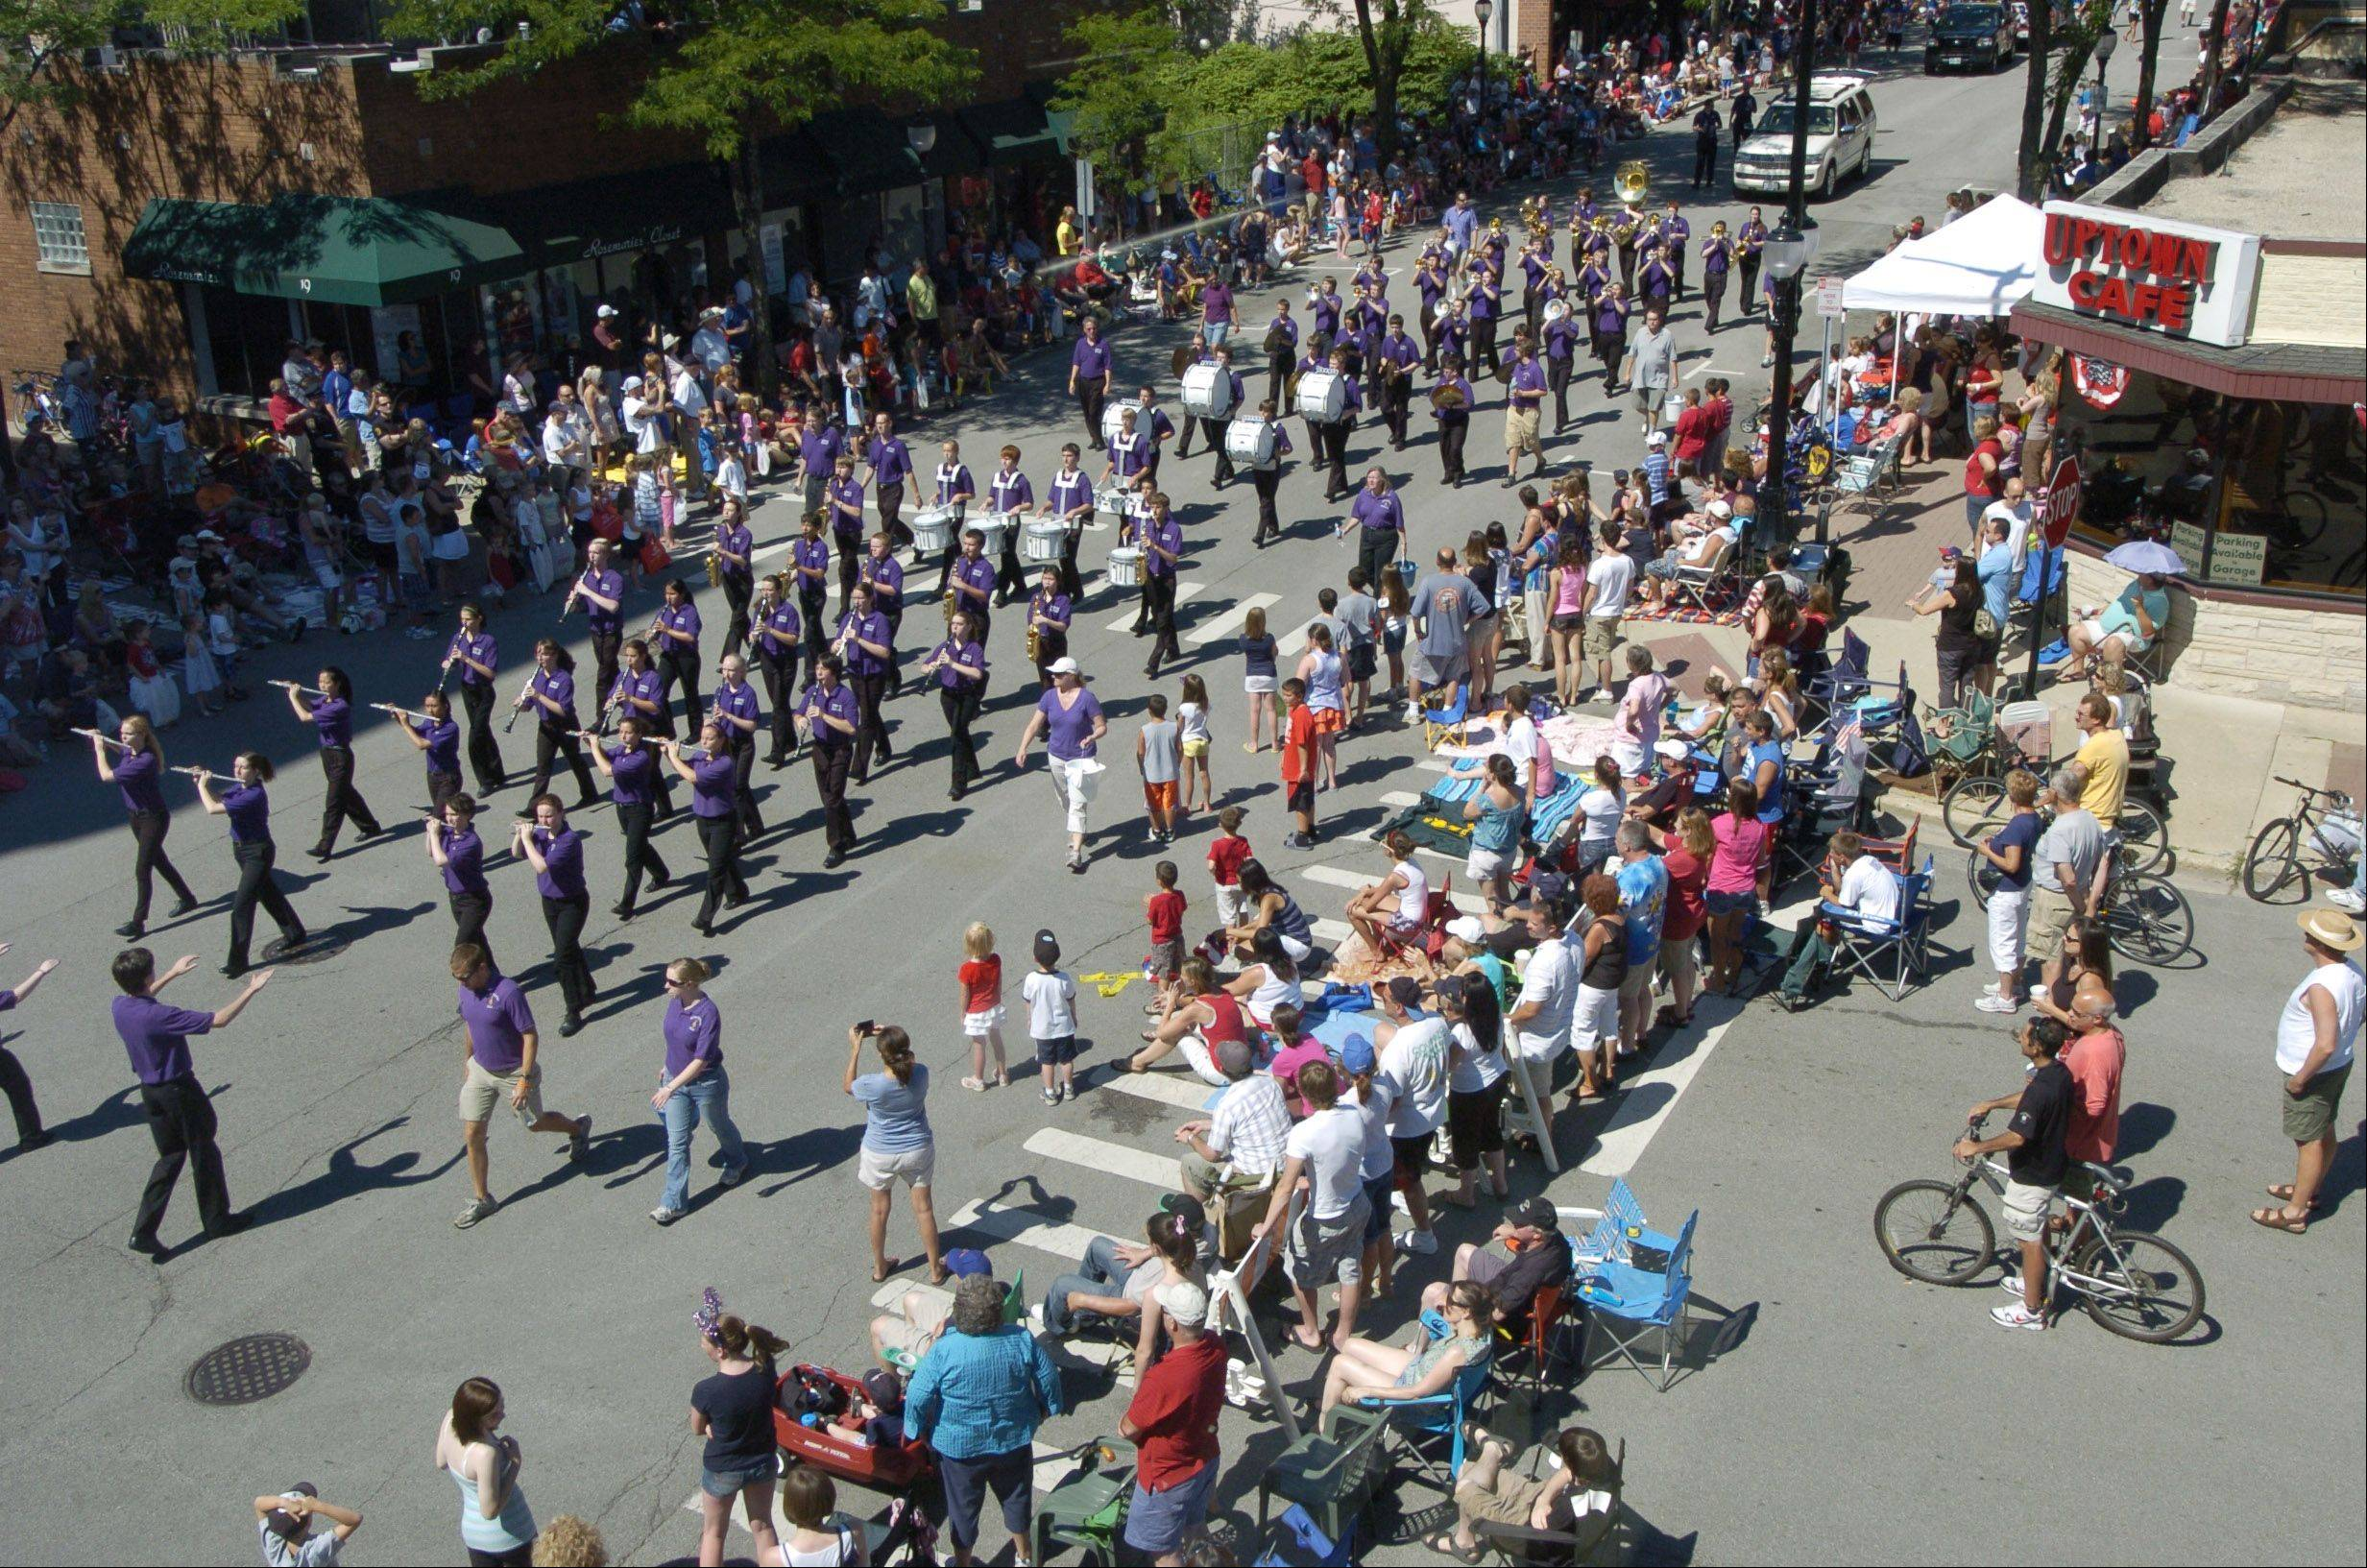 The Rolling Meadows High School marching band plays during the Arlington Heights Fourth of July parade Monday.